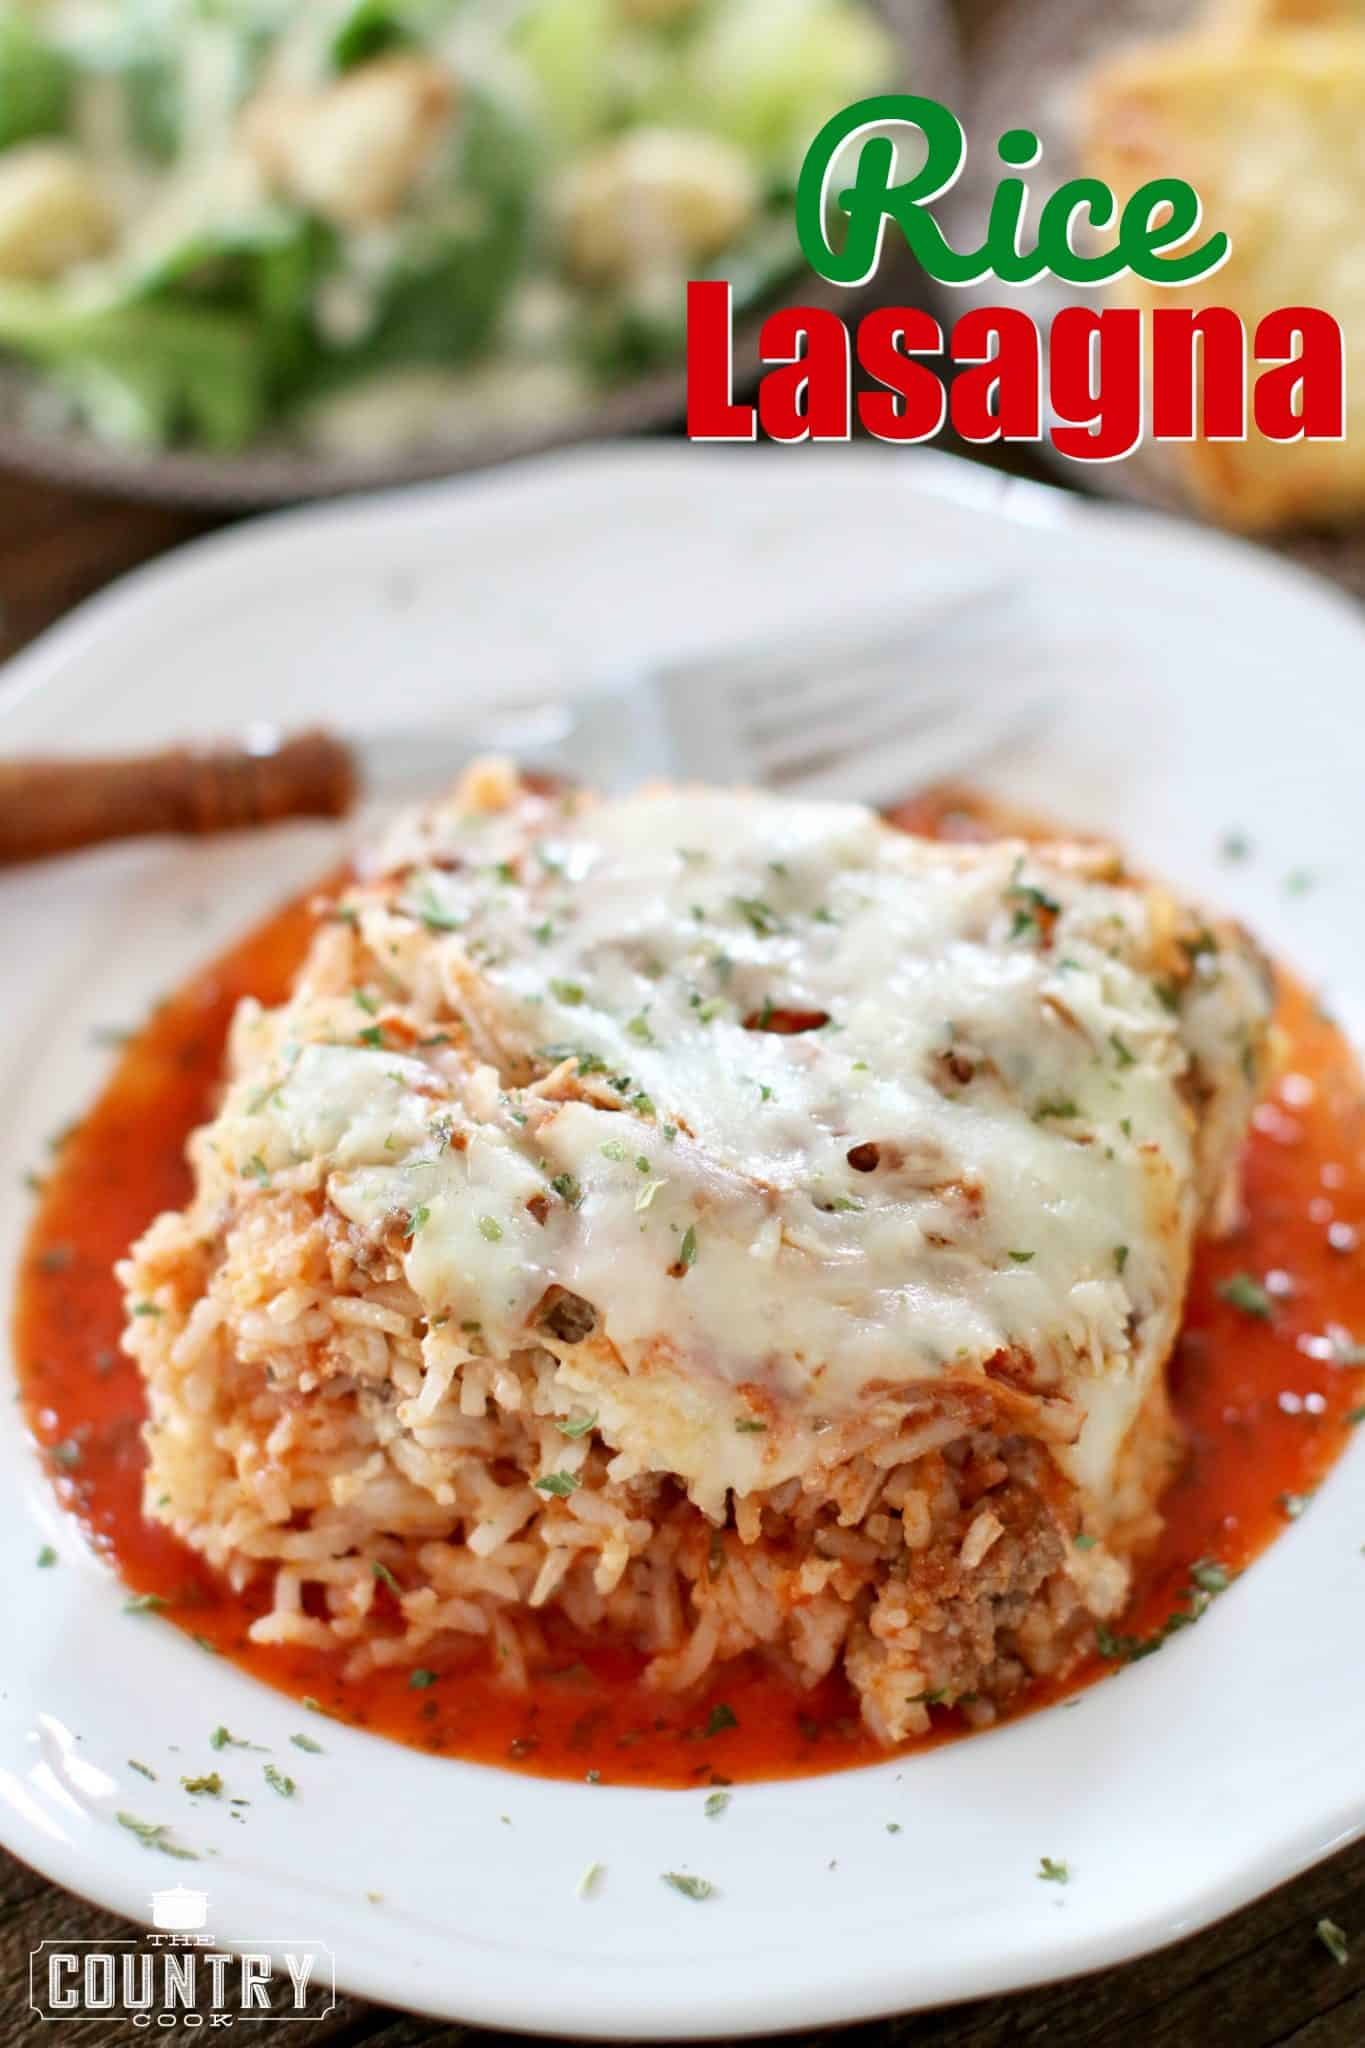 Rice lasagna copyright the country cook rice lasagna recipe from the country cook forumfinder Image collections